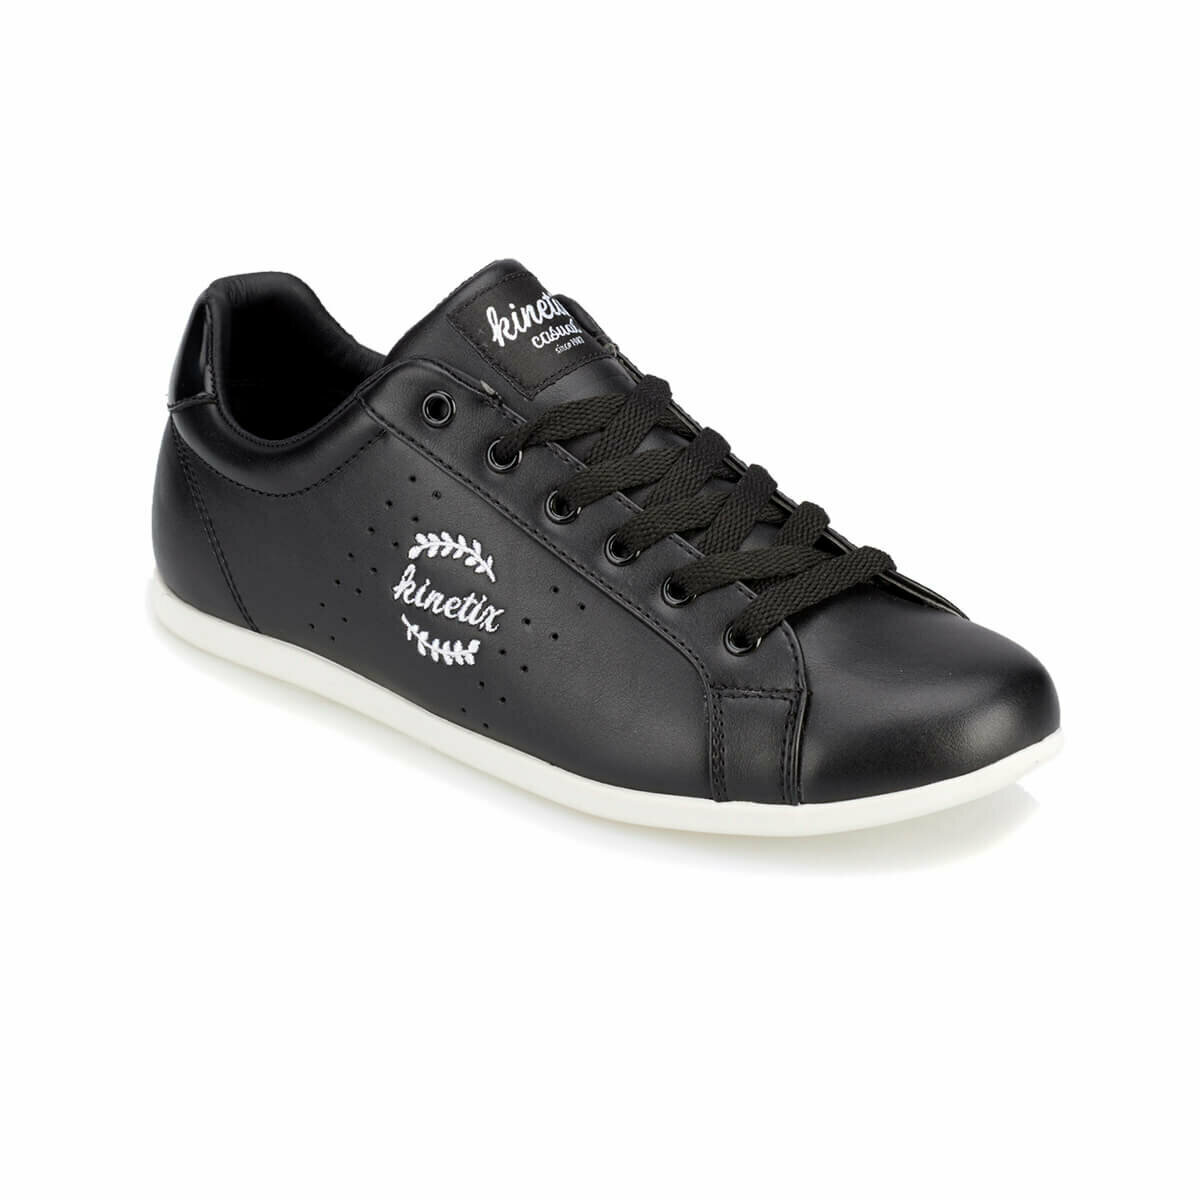 FLO BENANY Black Women 'S Sneaker Shoes KINETIX